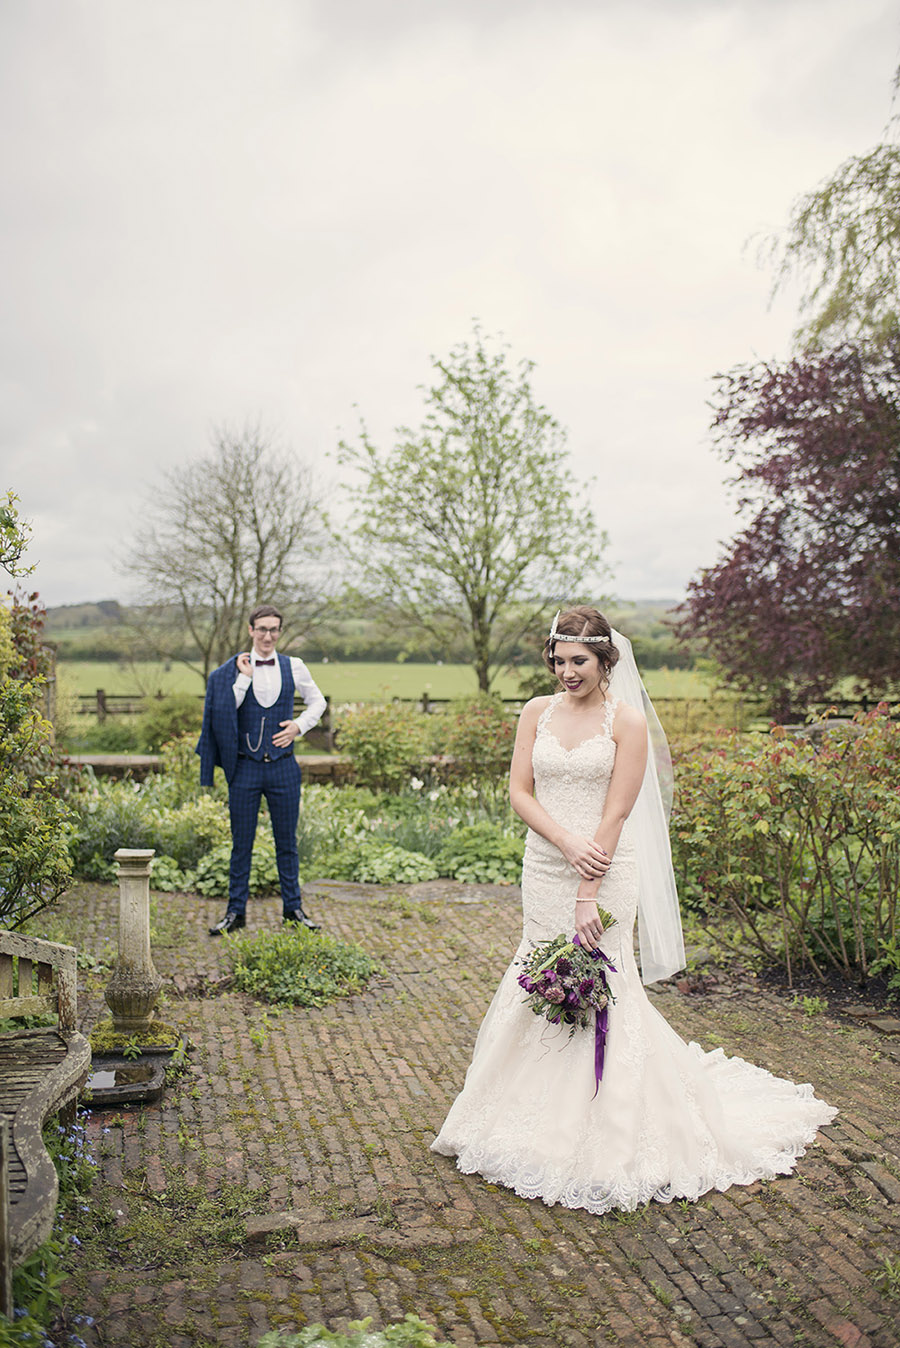 Gatsby vintage wedding at Crockwell Farm, images by Jodie Cooling Photography (21)